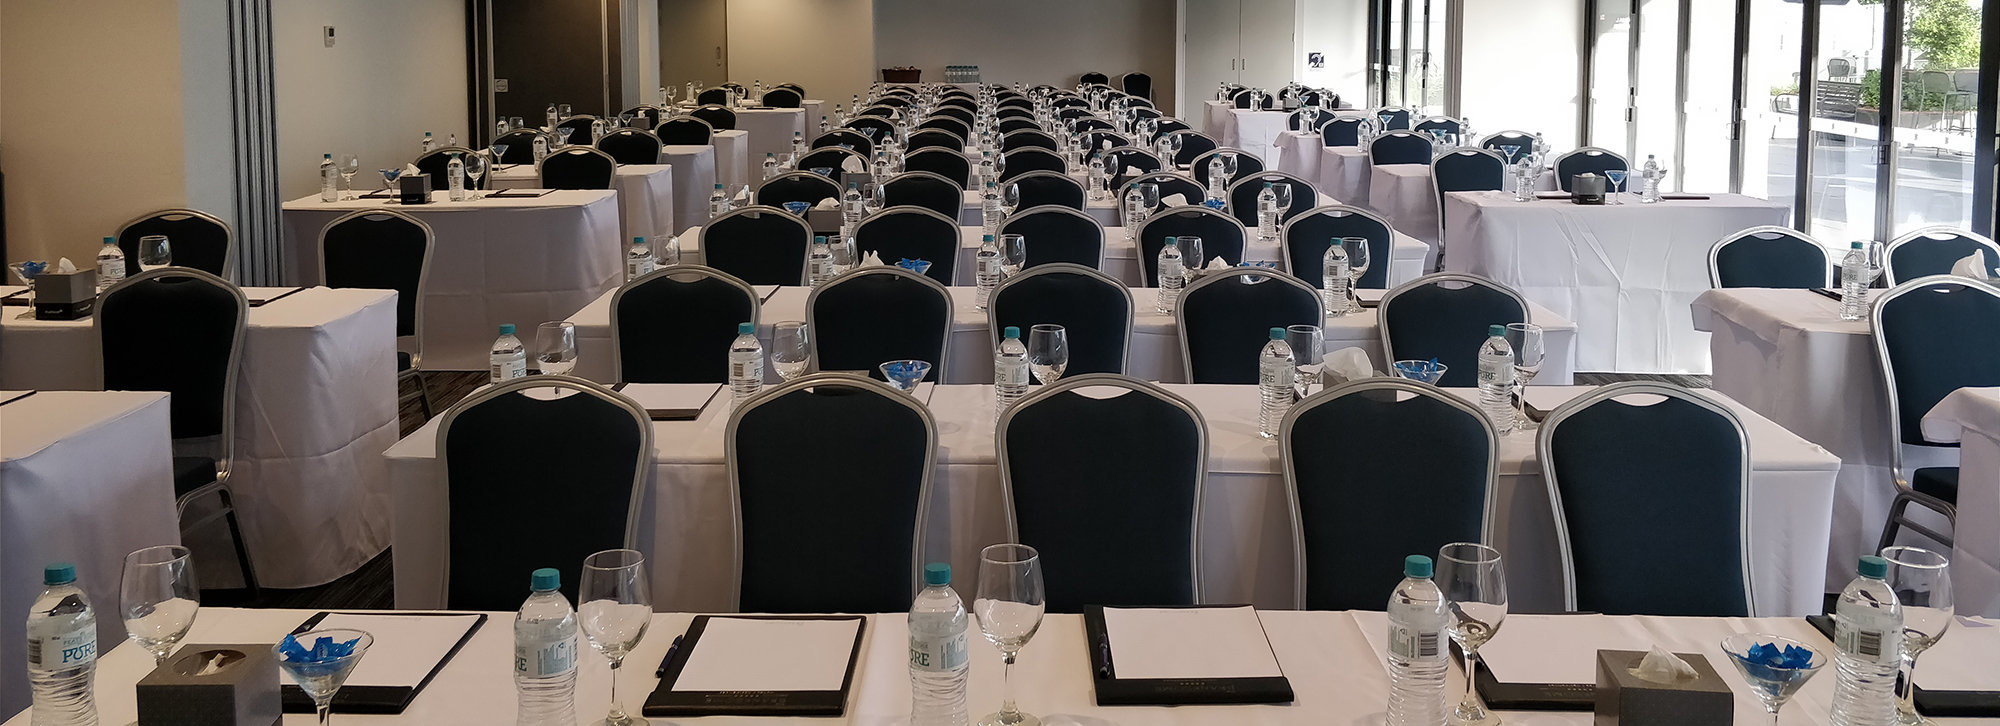 3 conference rooms combined accommodating up to 140 attendees